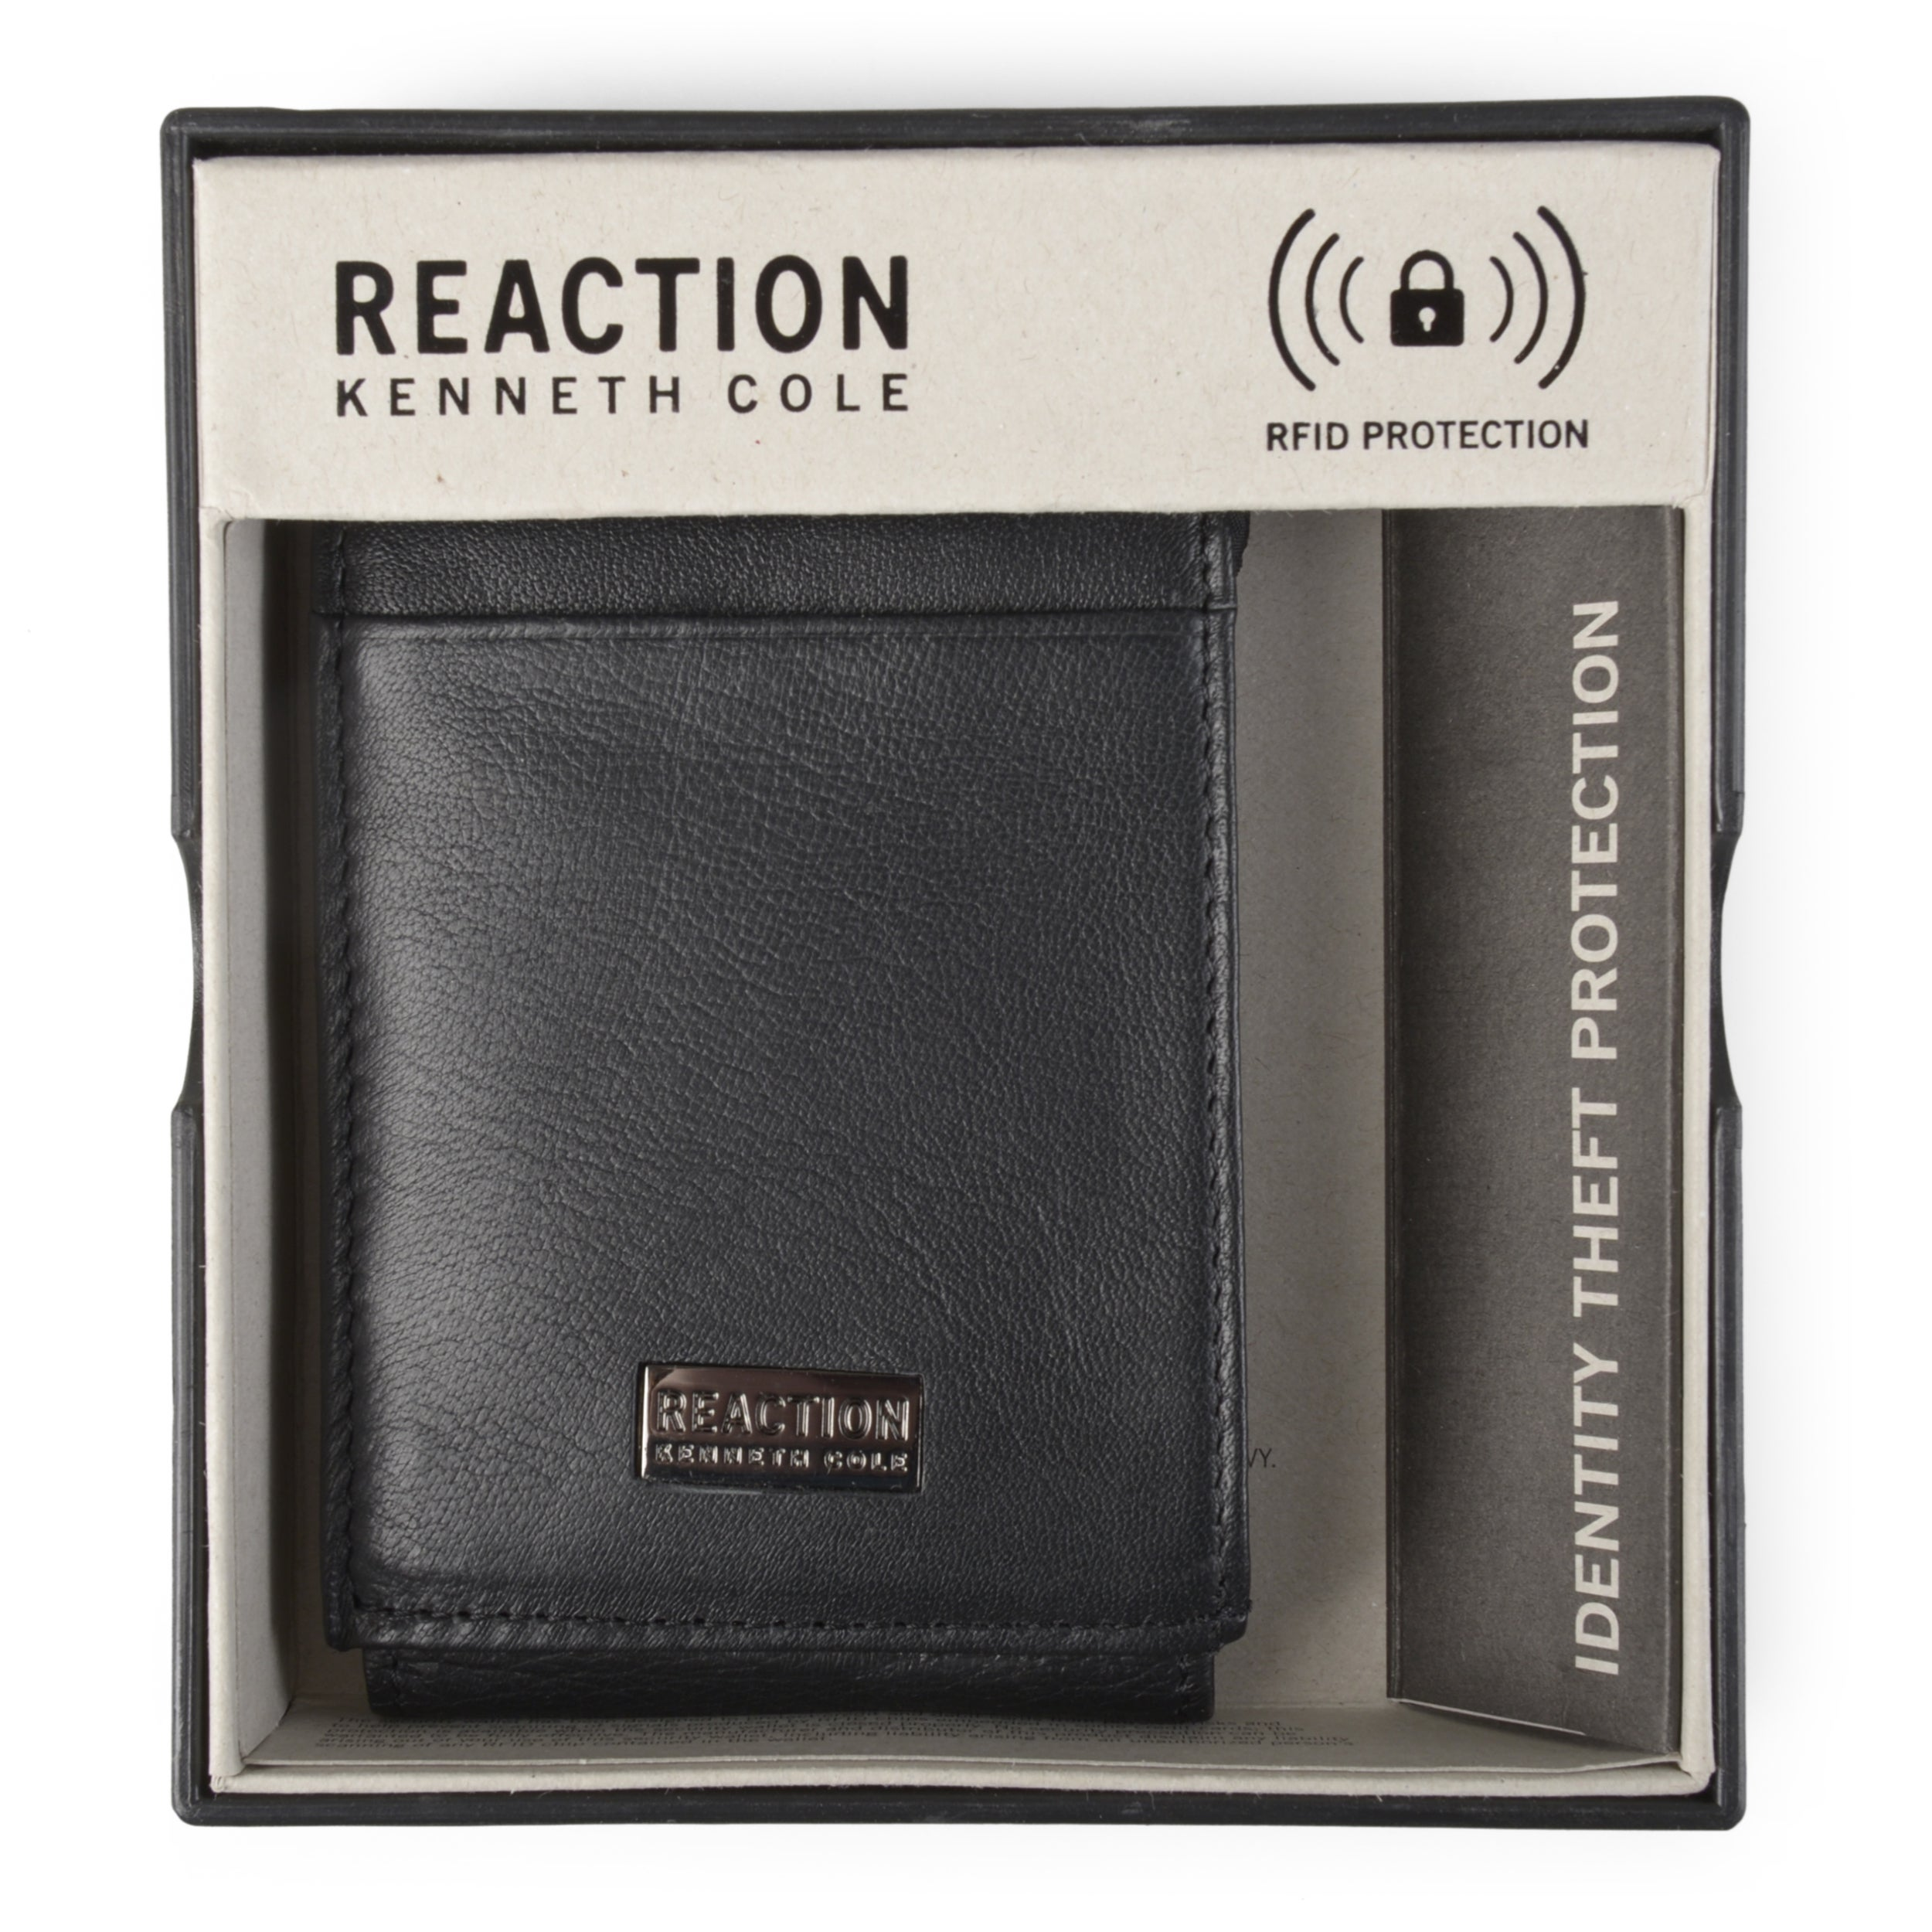 732fb99ac1fd Shop Kenneth Cole Reaction Men's Genuine Leather RFID Magnetic Wallet -  Free Shipping On Orders Over $45 - Overstock - 15199033